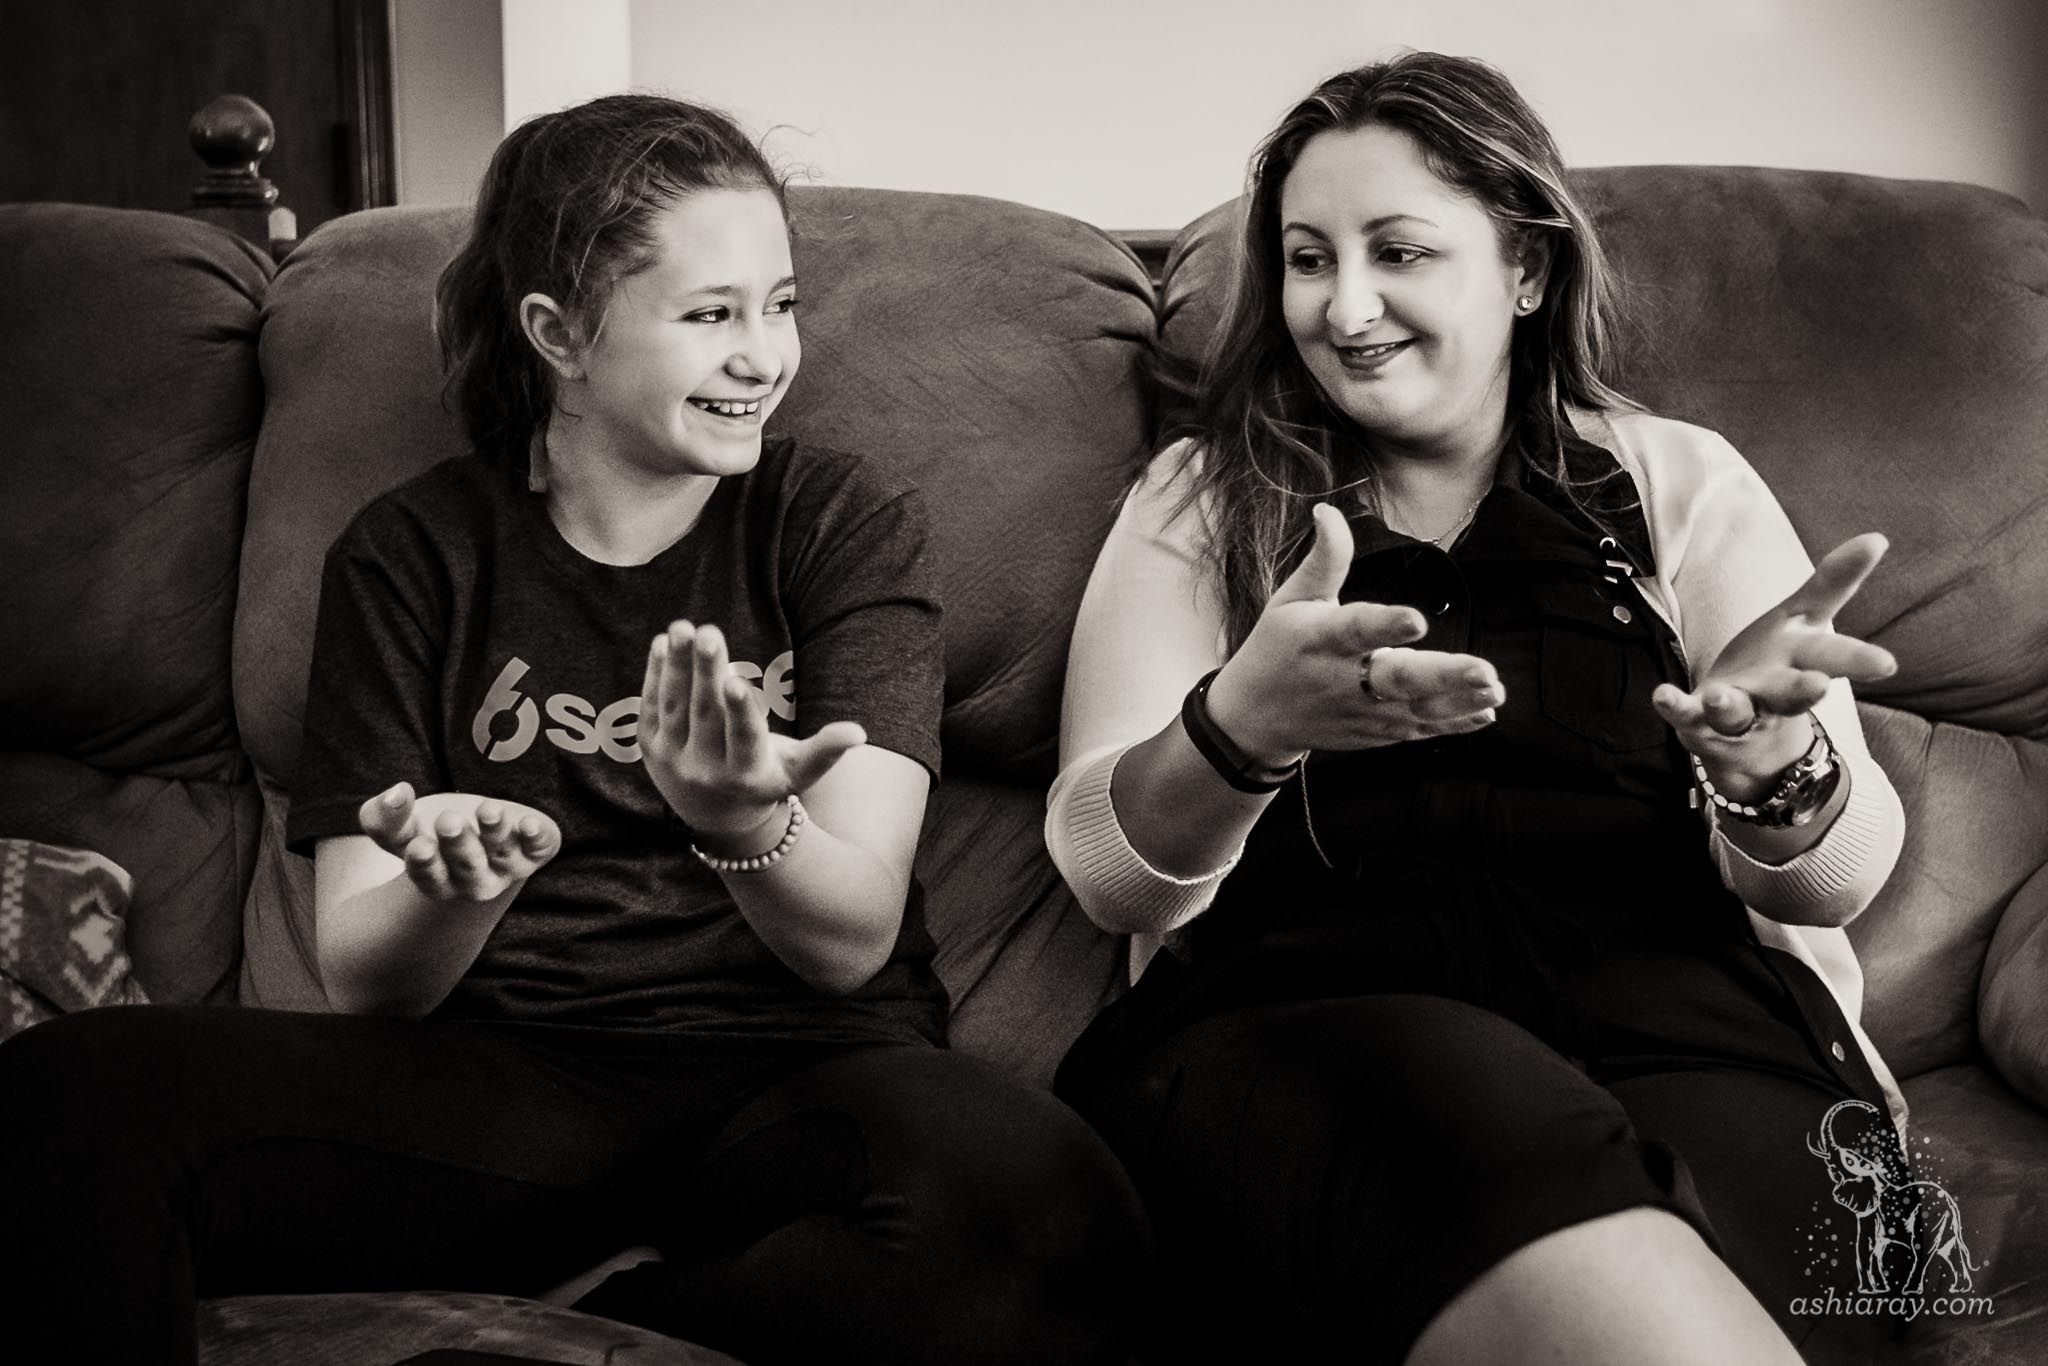 Mother learning hand coreography from teen daughter on sofa